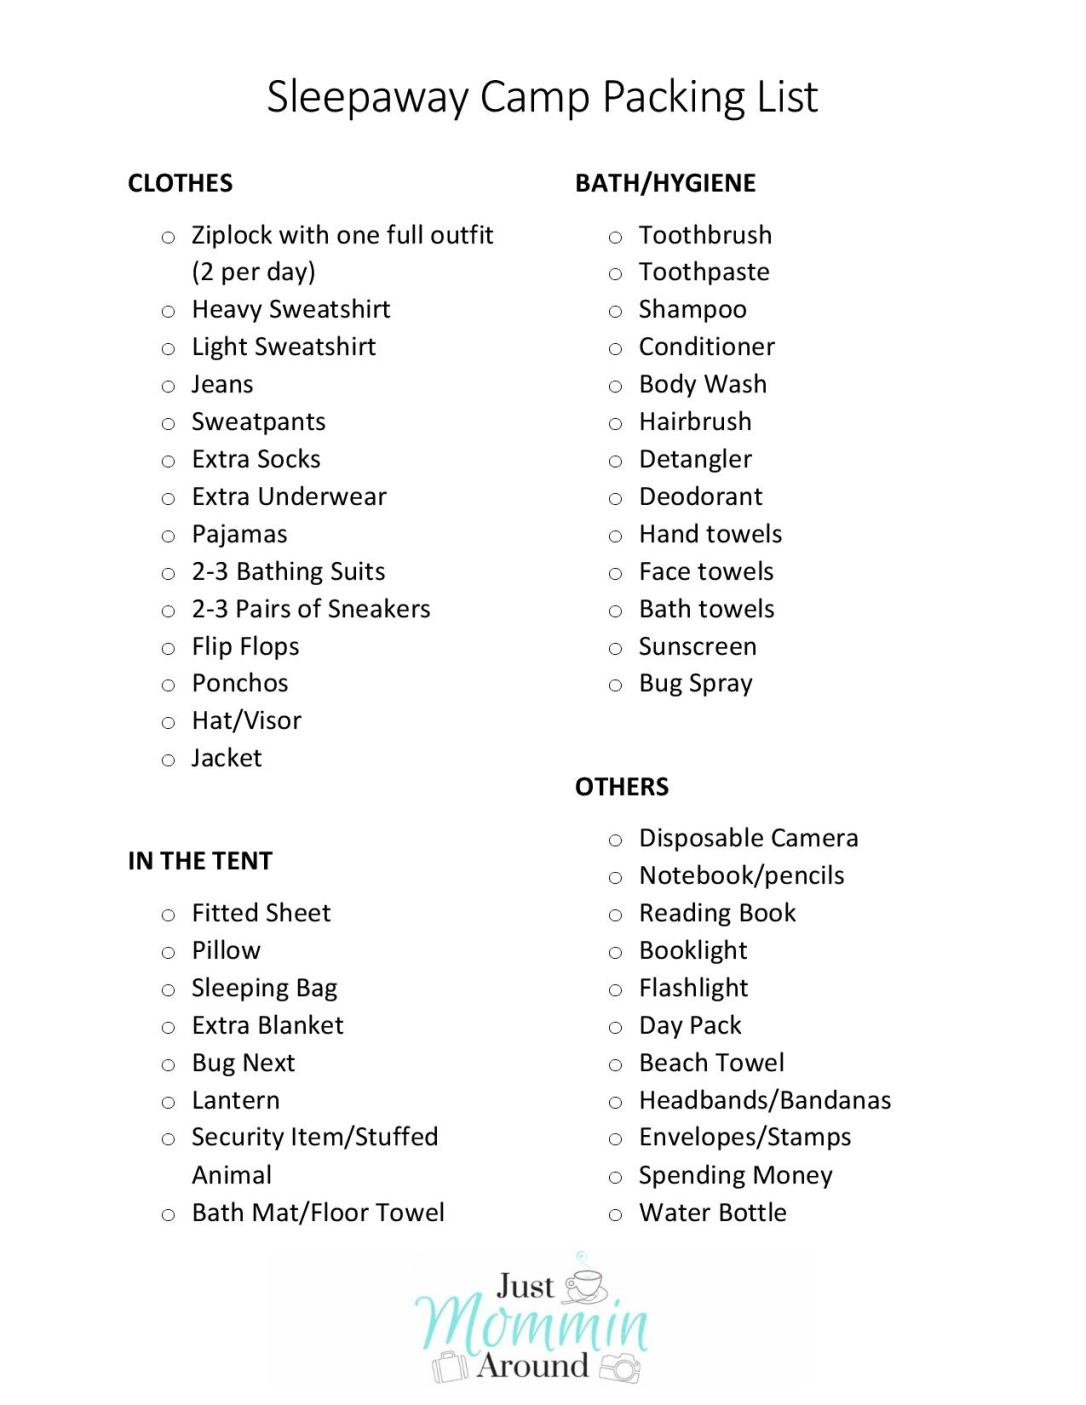 Sleepaway Camp Packing List-Just Mommin Around-page-001